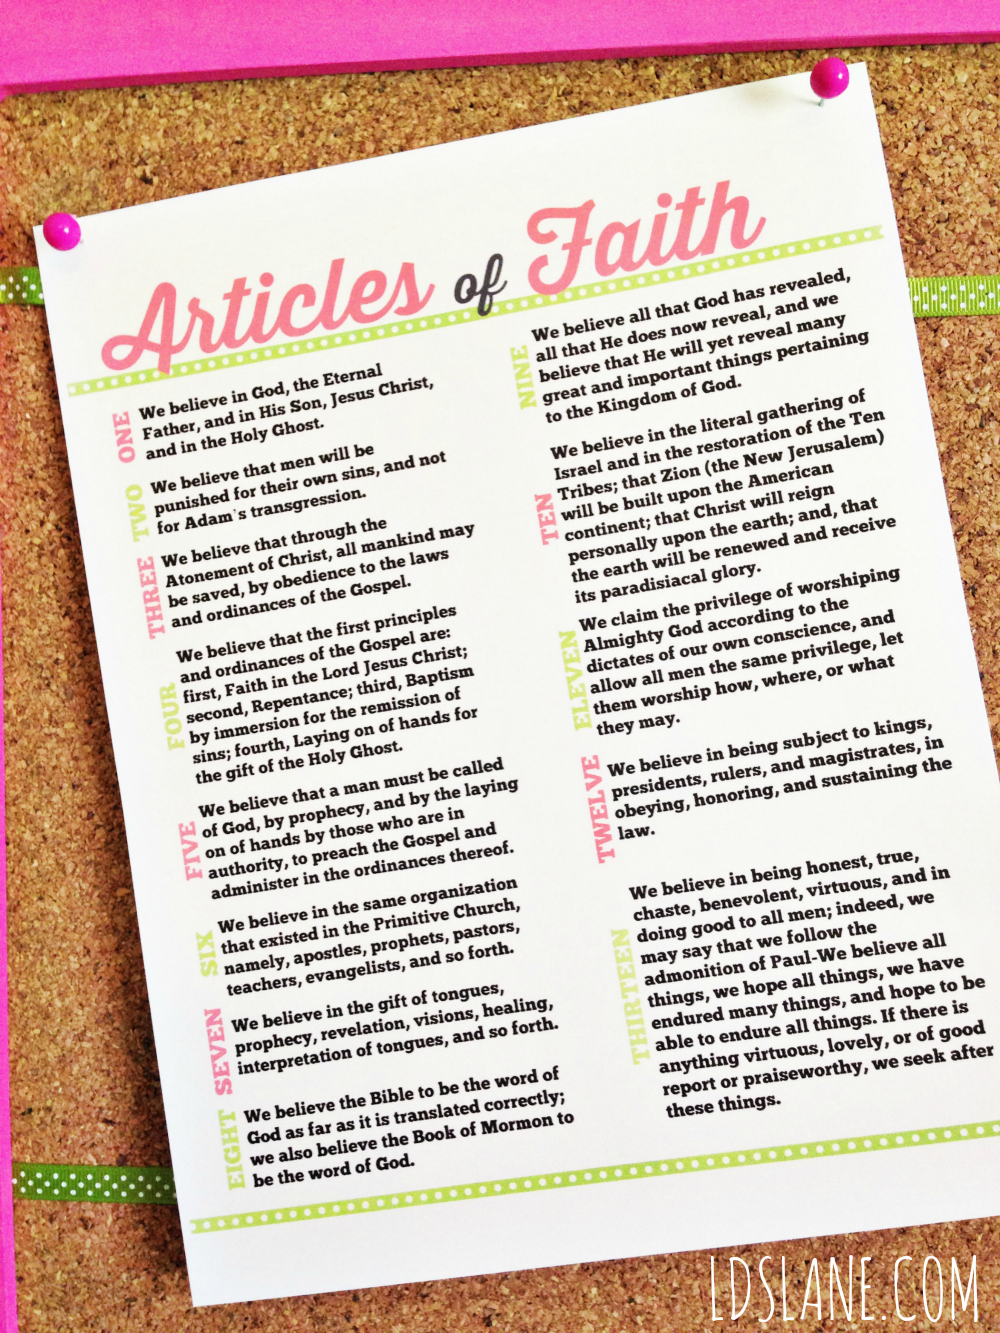 This is an image of Obsessed Articles of Faith Printable